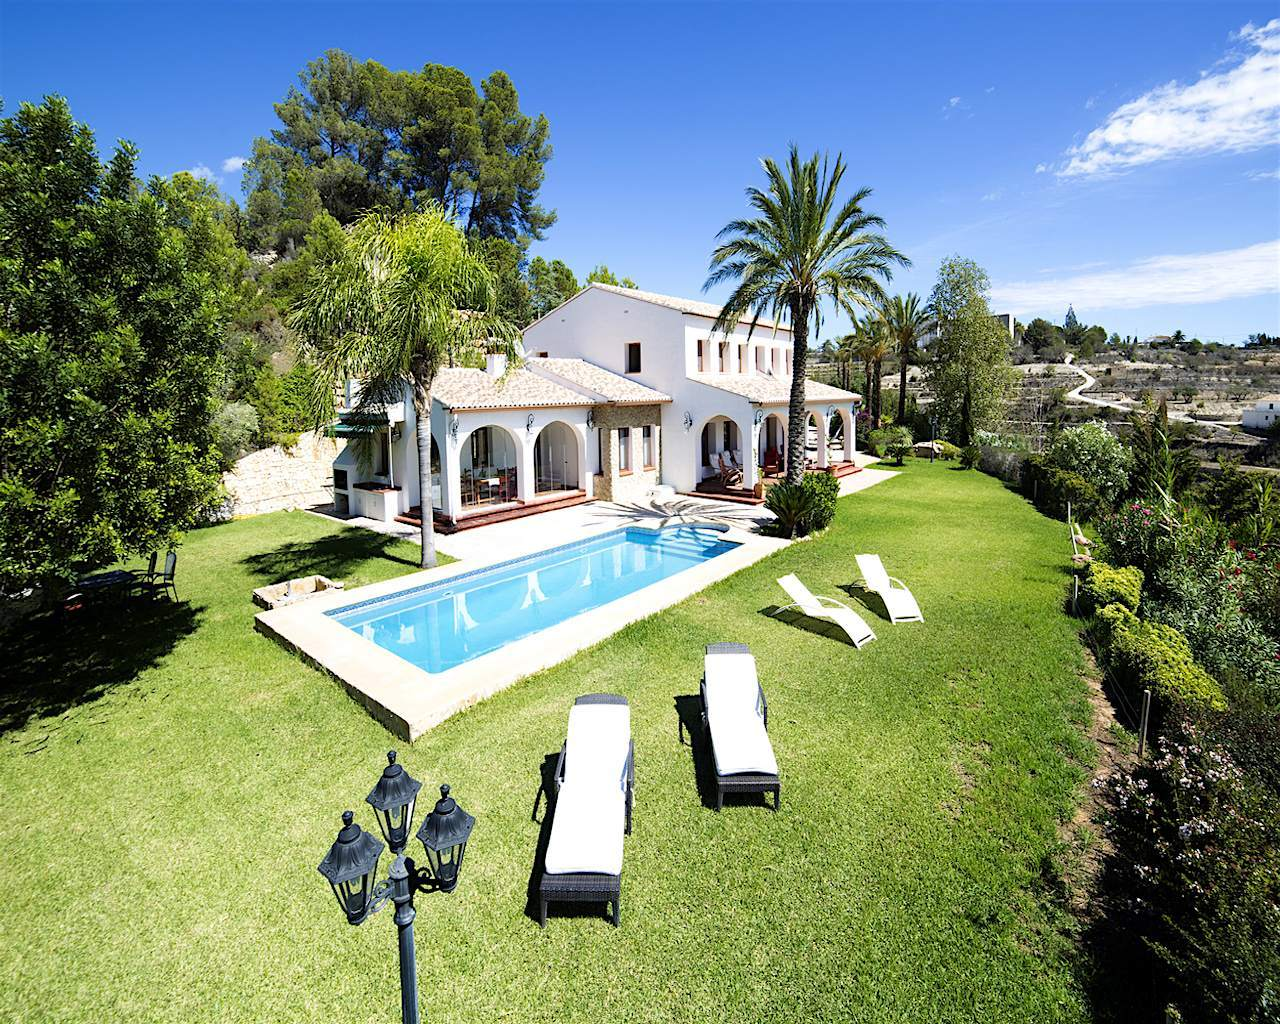 6 Bedroom Finca / Country House in Benissa